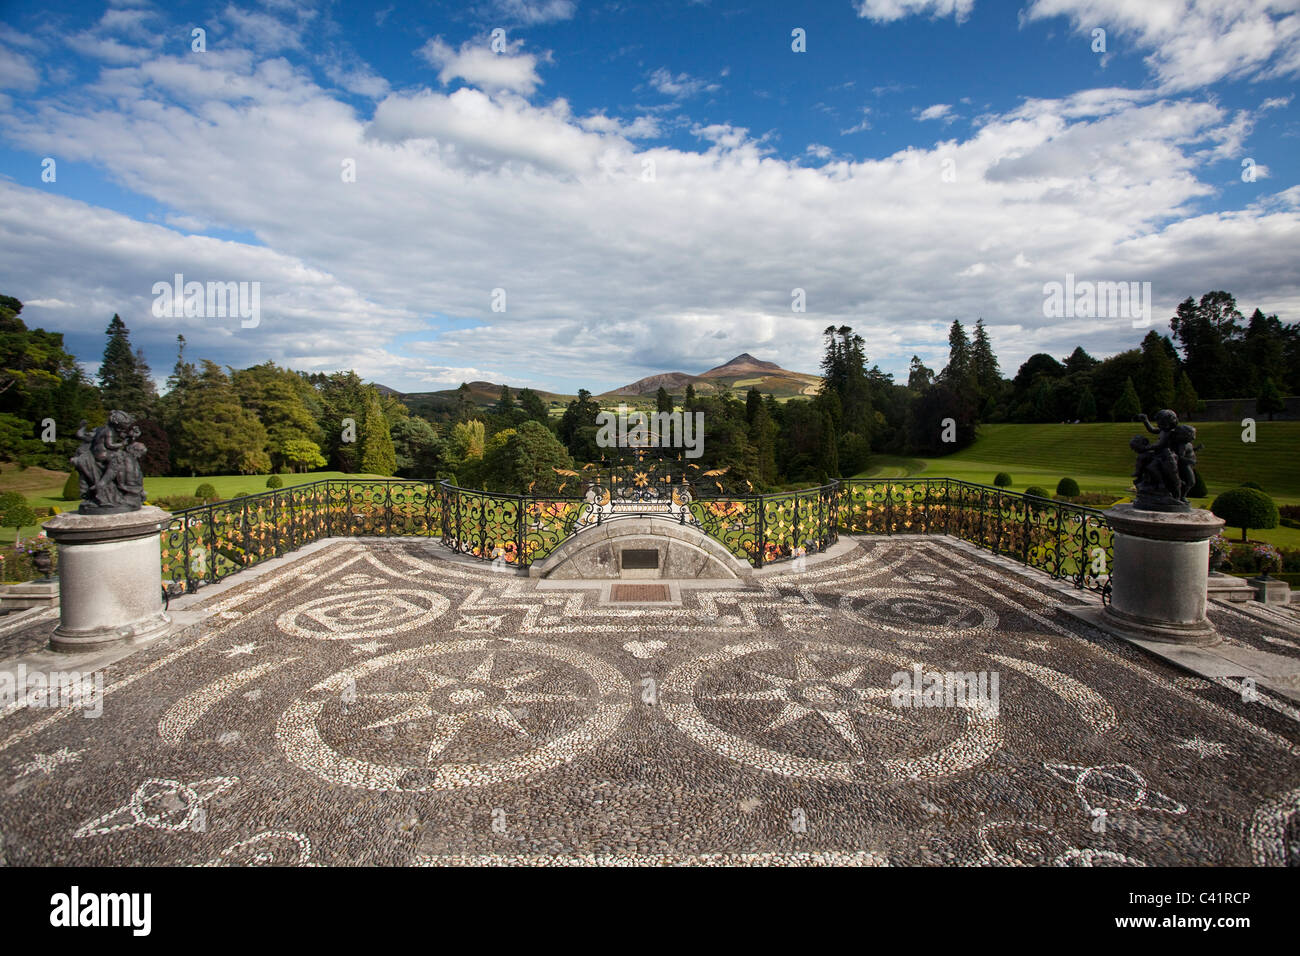 The gardens and forecourt of Powerscourt House, Enniskerry, County Wicklow, Ireland. - Stock Image